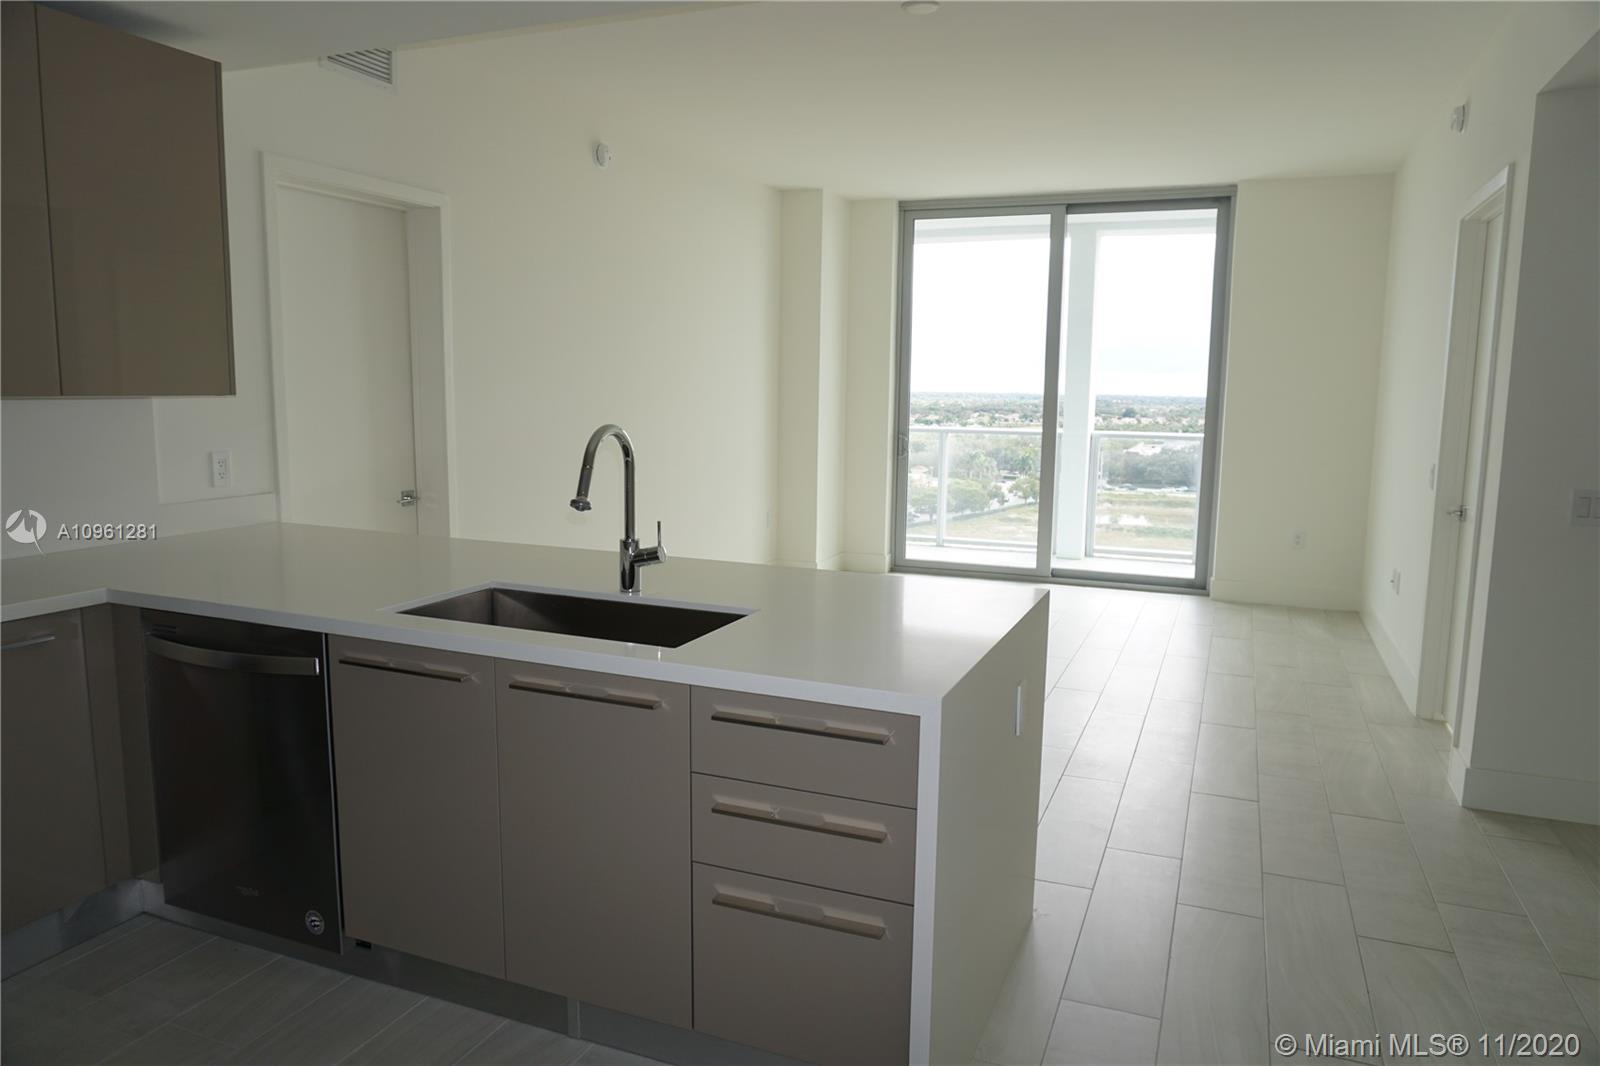 A remarkable new unit in a masterfully planned community. Luxurious living in the Sawgrass Mills area. The unit has a south exposure with incredible views from  inside or balcony area. 2 Bedrooms & 2 baths with a beautiful kitchen area that includes stainless steel appliances. Amenities include: An incredible gym, Sauna, Spa, Kids Play room, Theater, Business room and Infinity pool to help you relax.  2  covered garage. This is a MUST SEE unit ready to move in!